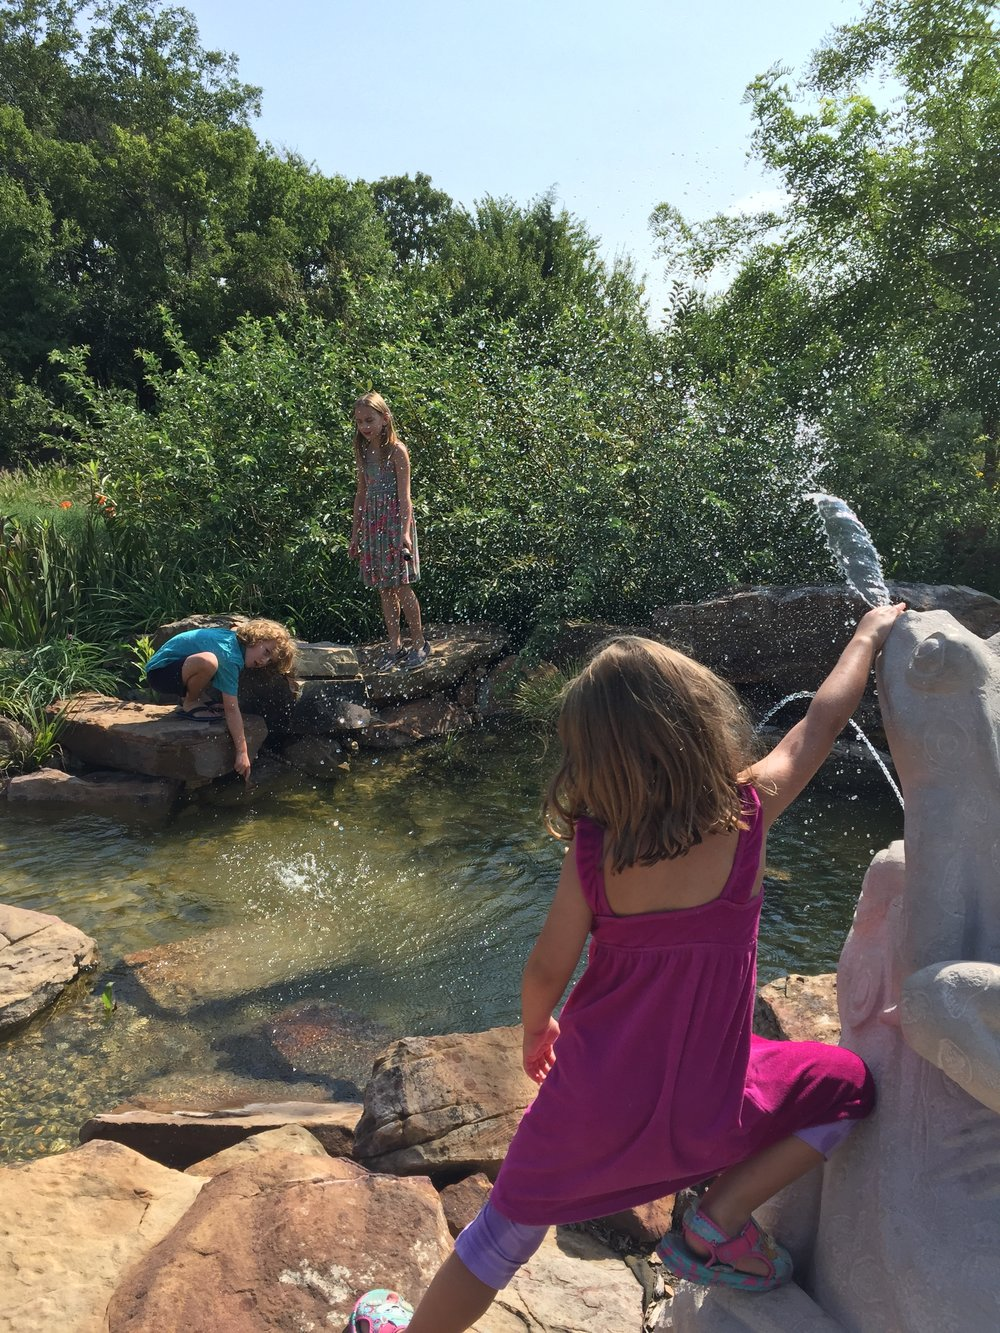 We had some unusually cool days in August so we visited the botanical garden!  Donovan and Serenity spent nearly an hour painting with water on the water wall, and making up their own imaginary worlds.  Maia and I went through the sensory garden and loved it =)